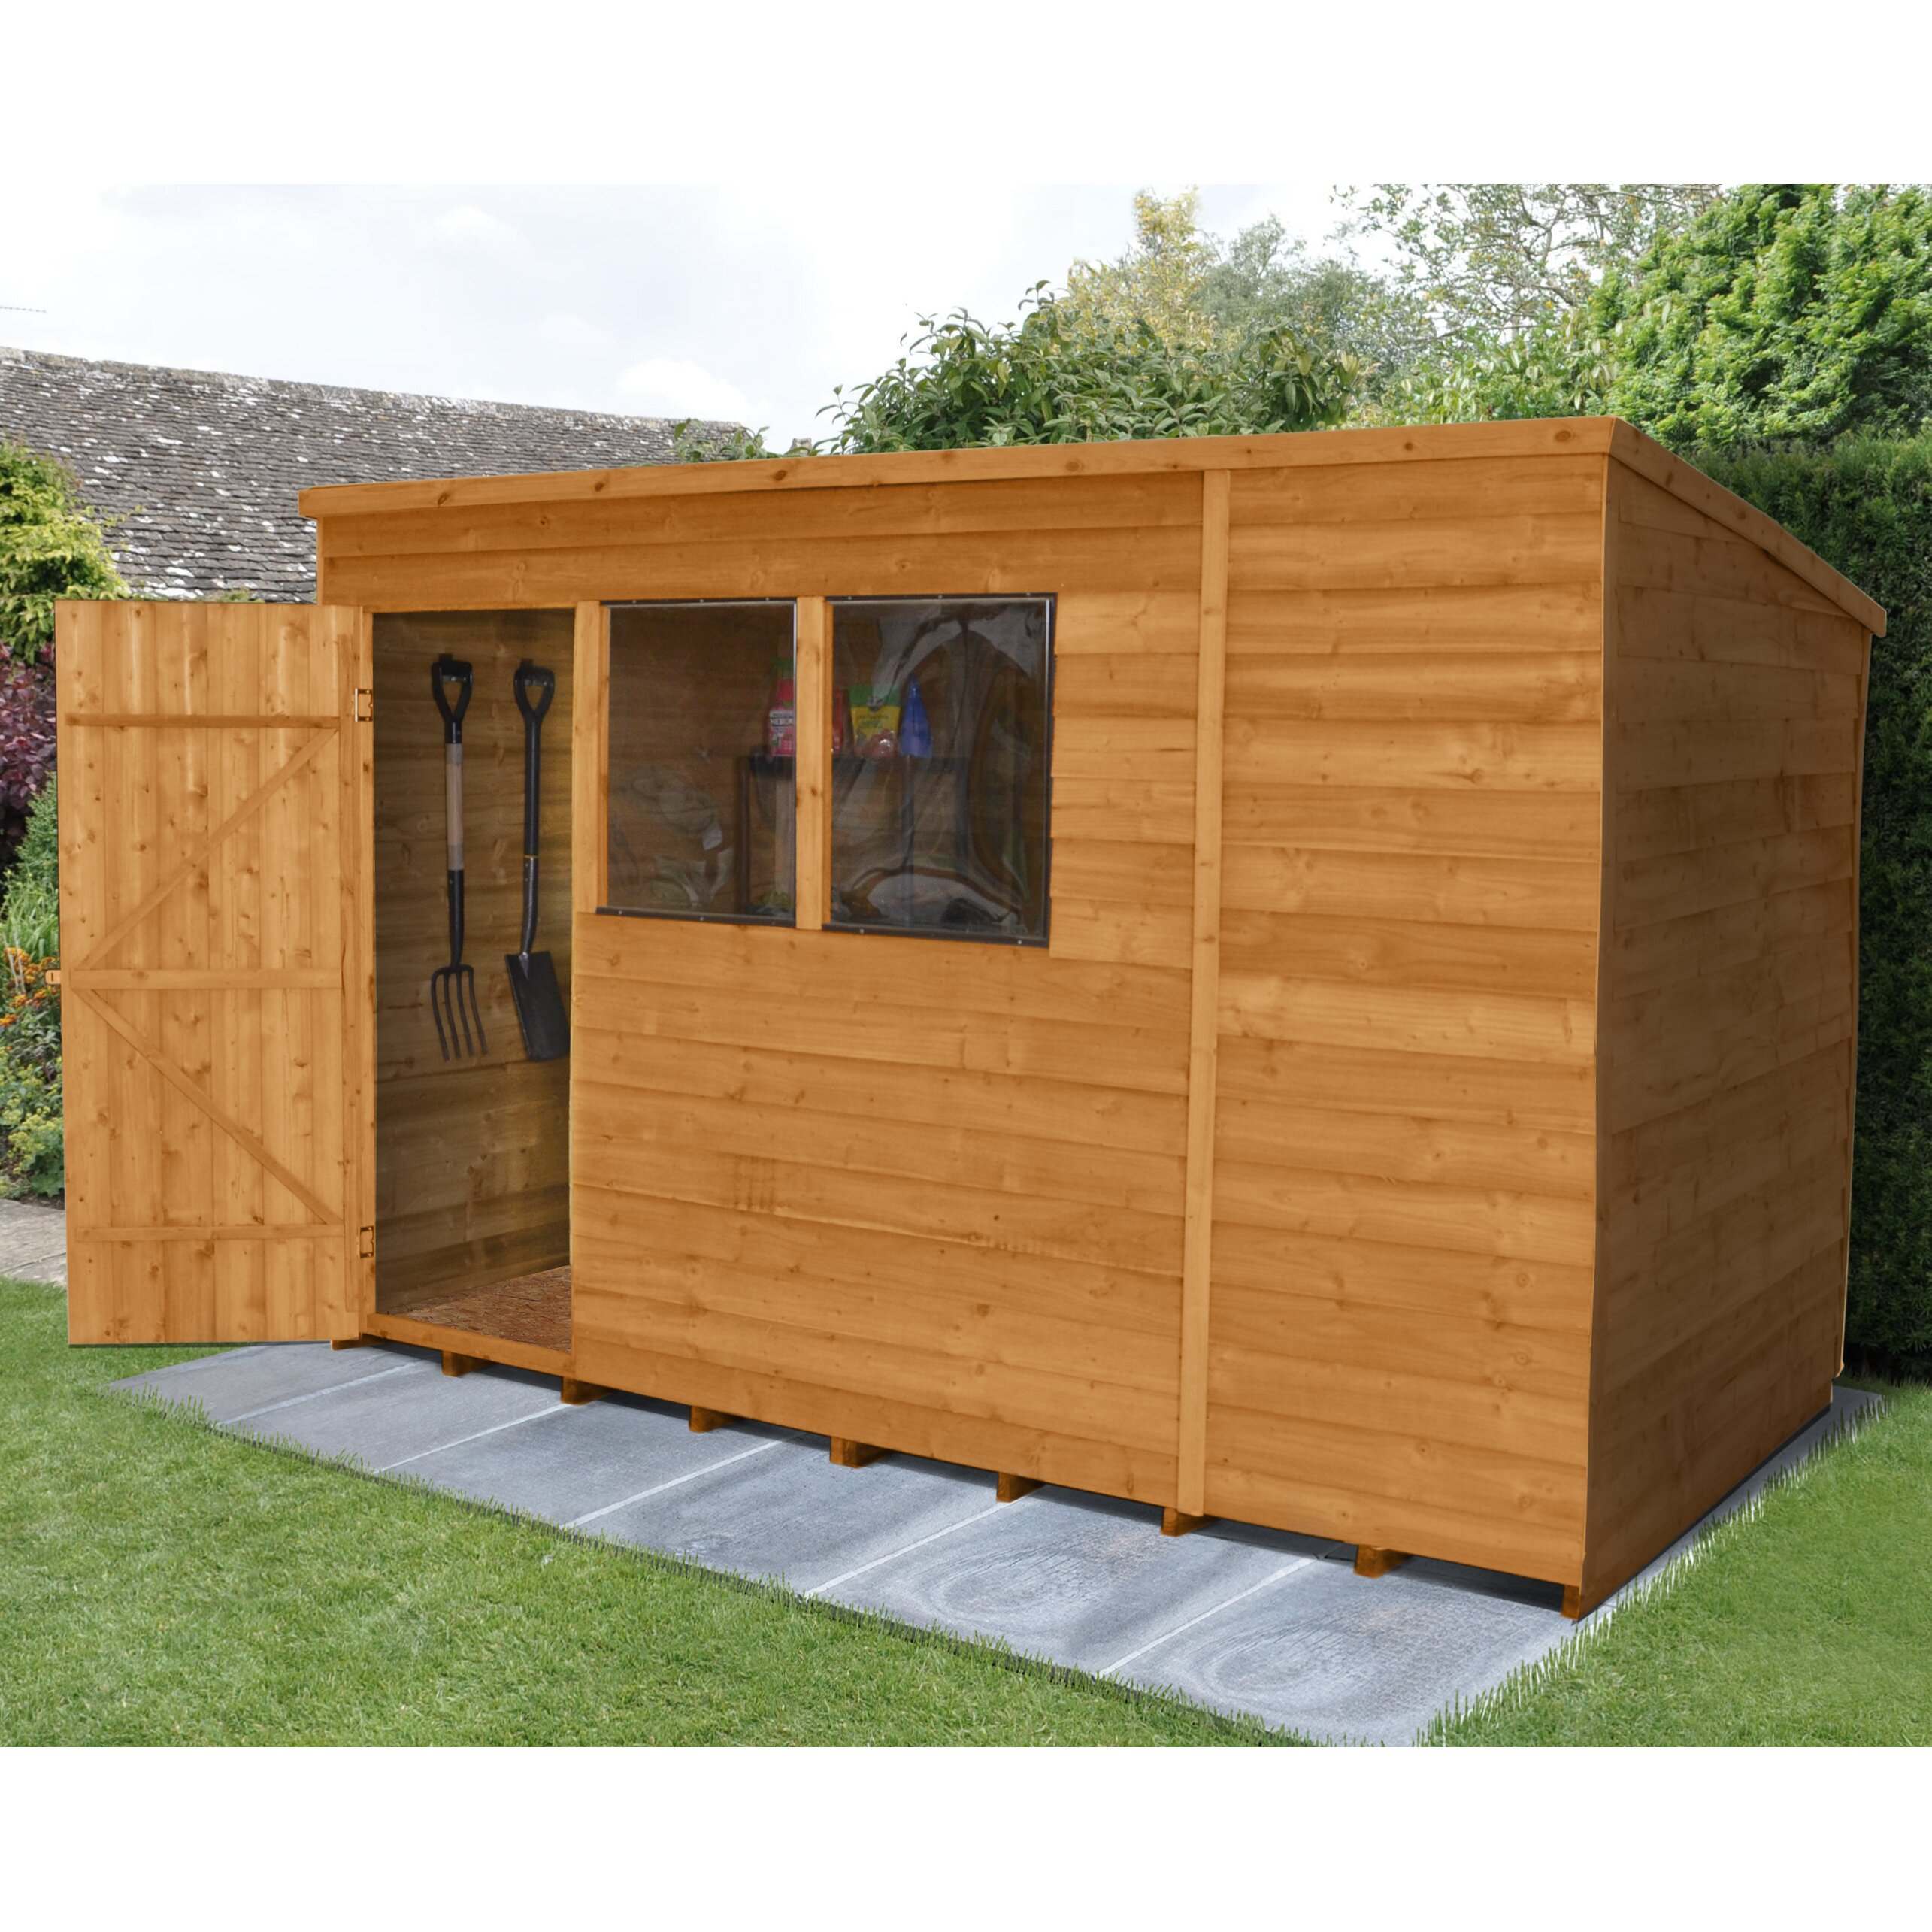 Forest Garden 10 x 6 Wooden Storage Shed & Reviews ...